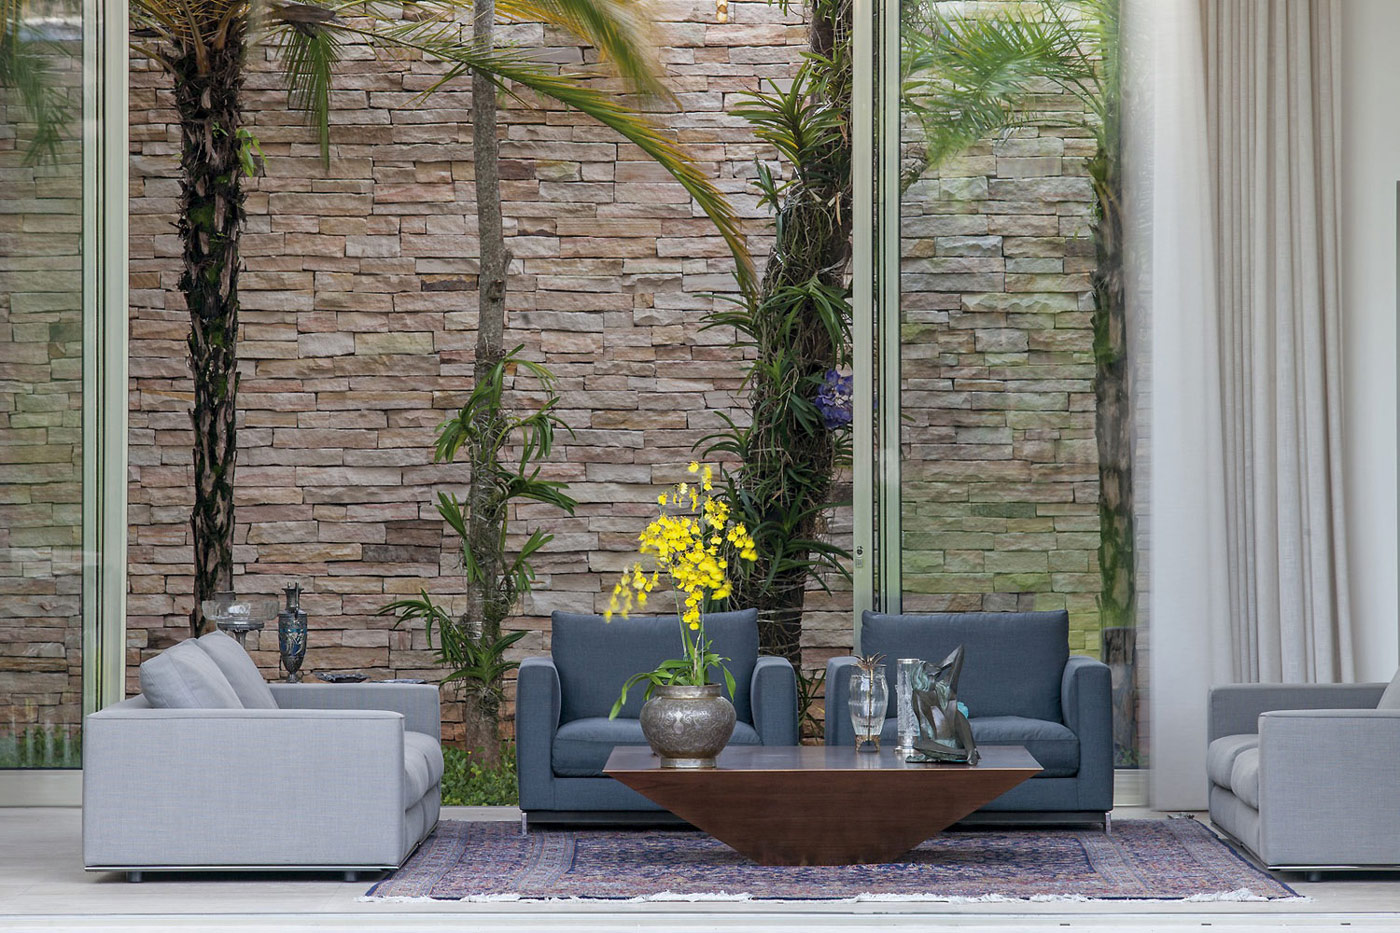 Stone Wall, Sofas, Coffee Table, Home in Uberlandia, Brazil